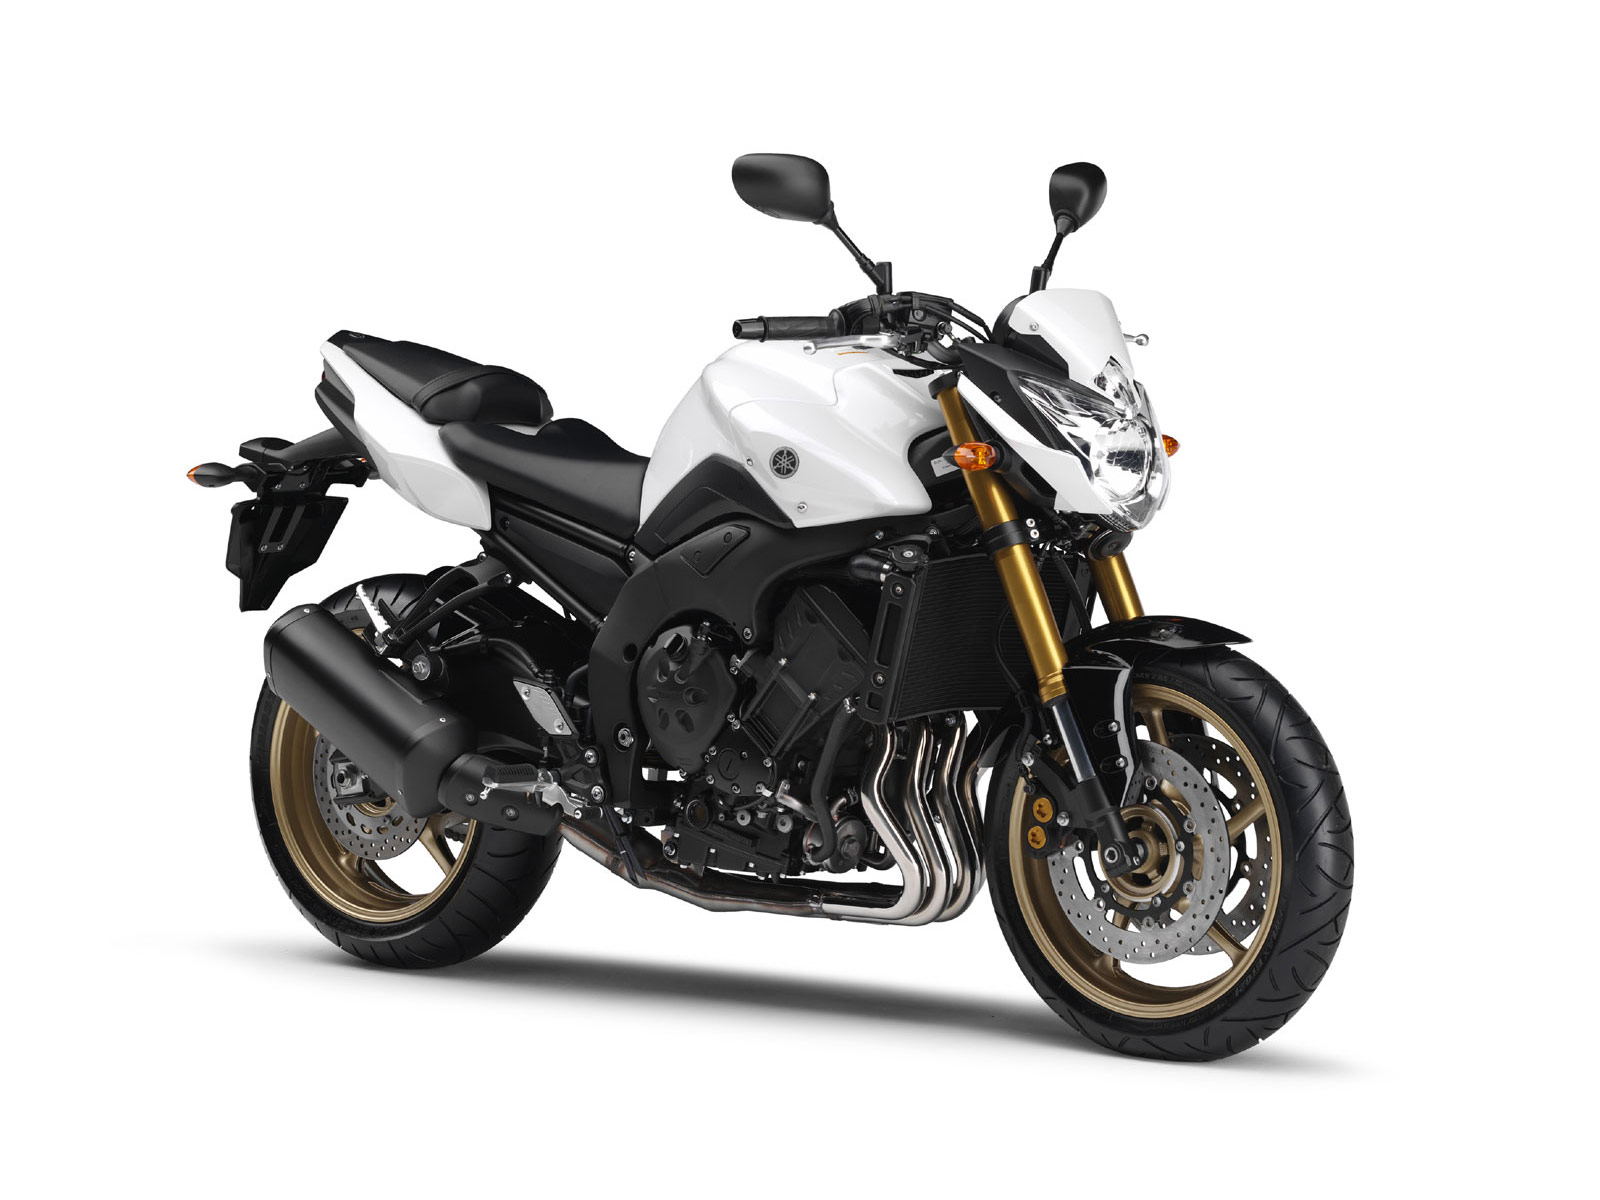 2011 yamaha fz8 motorcycle pictures review and specifications for Yamaha fz8 specs